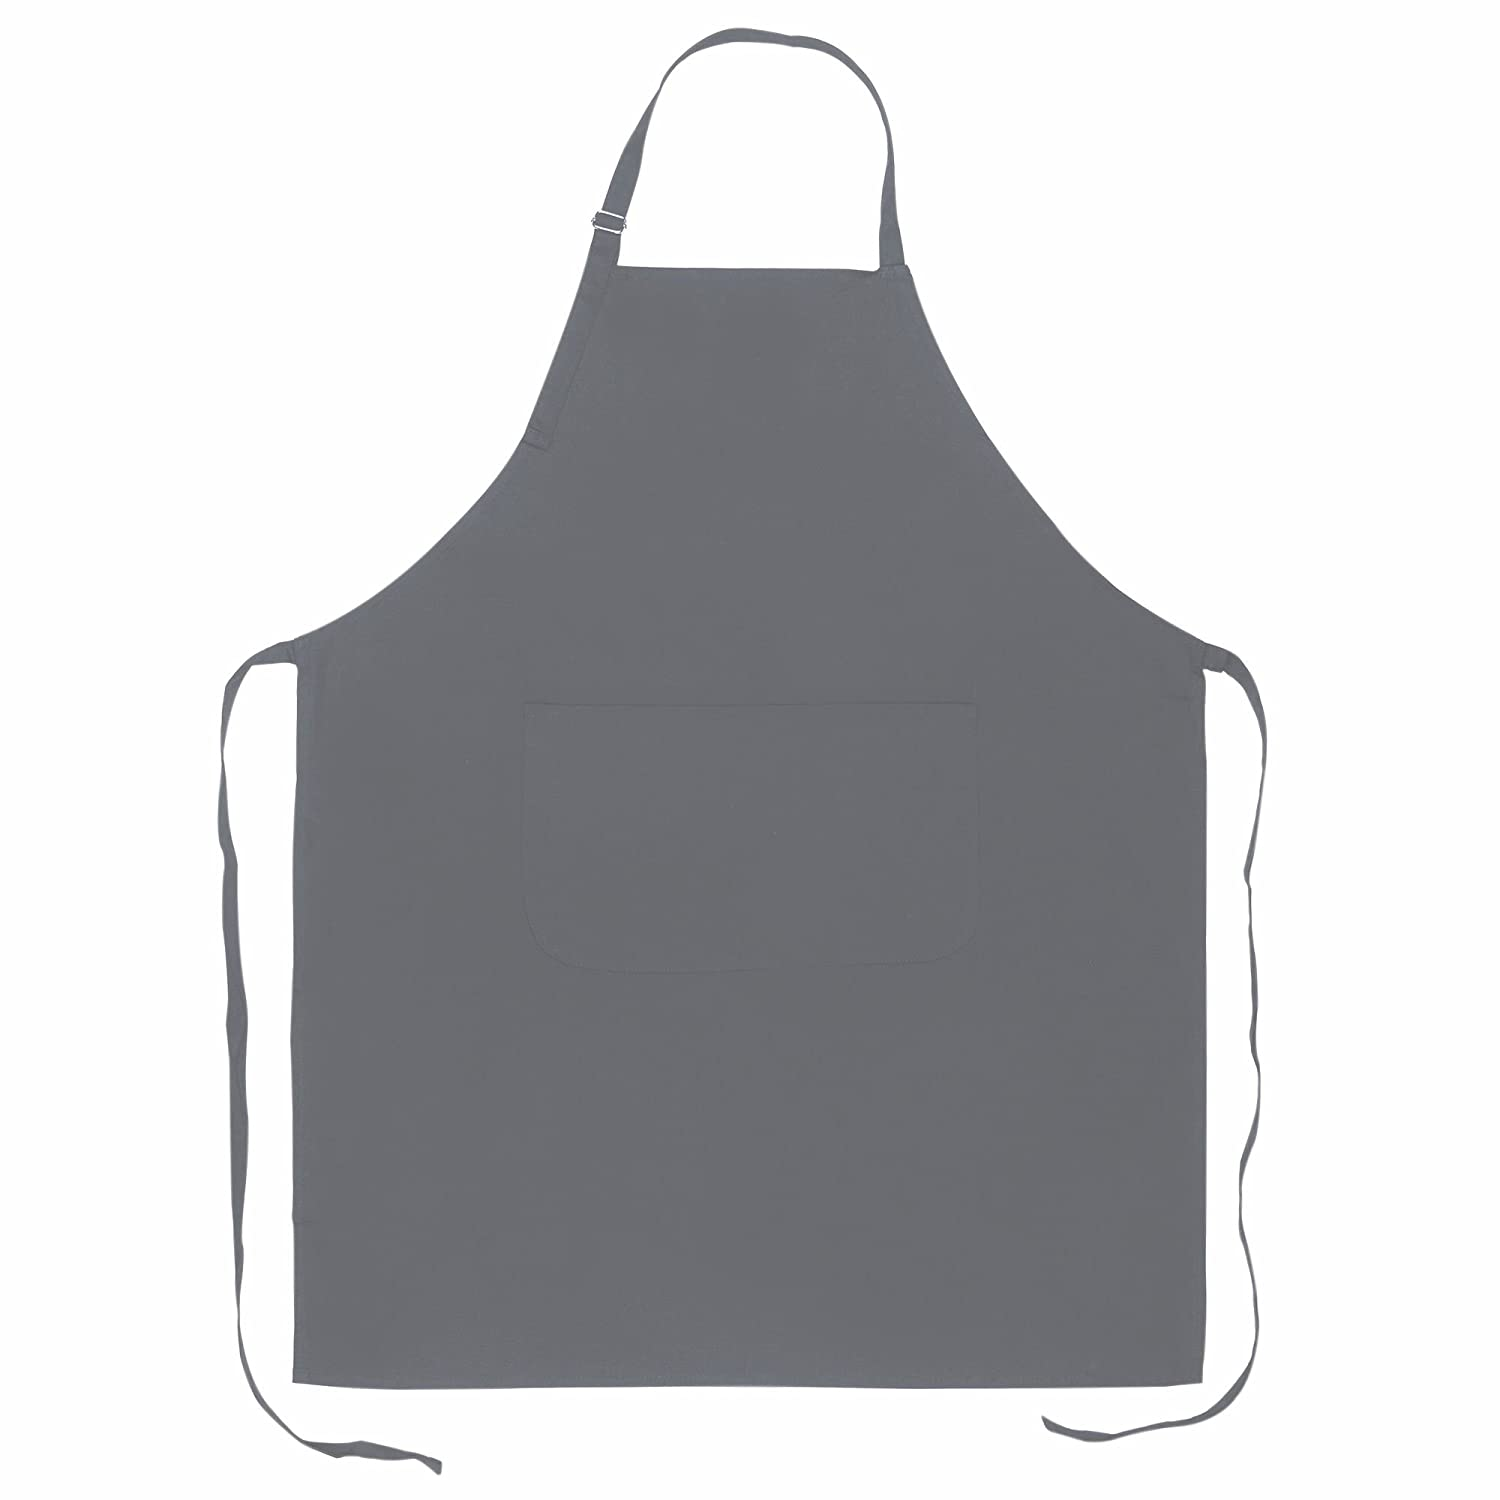 Kitchen Apron Bib Apron 100% Cotton 70 x 85 cm with Adjustable Neck Band and Pocket on Front. grey ROTH Marketing